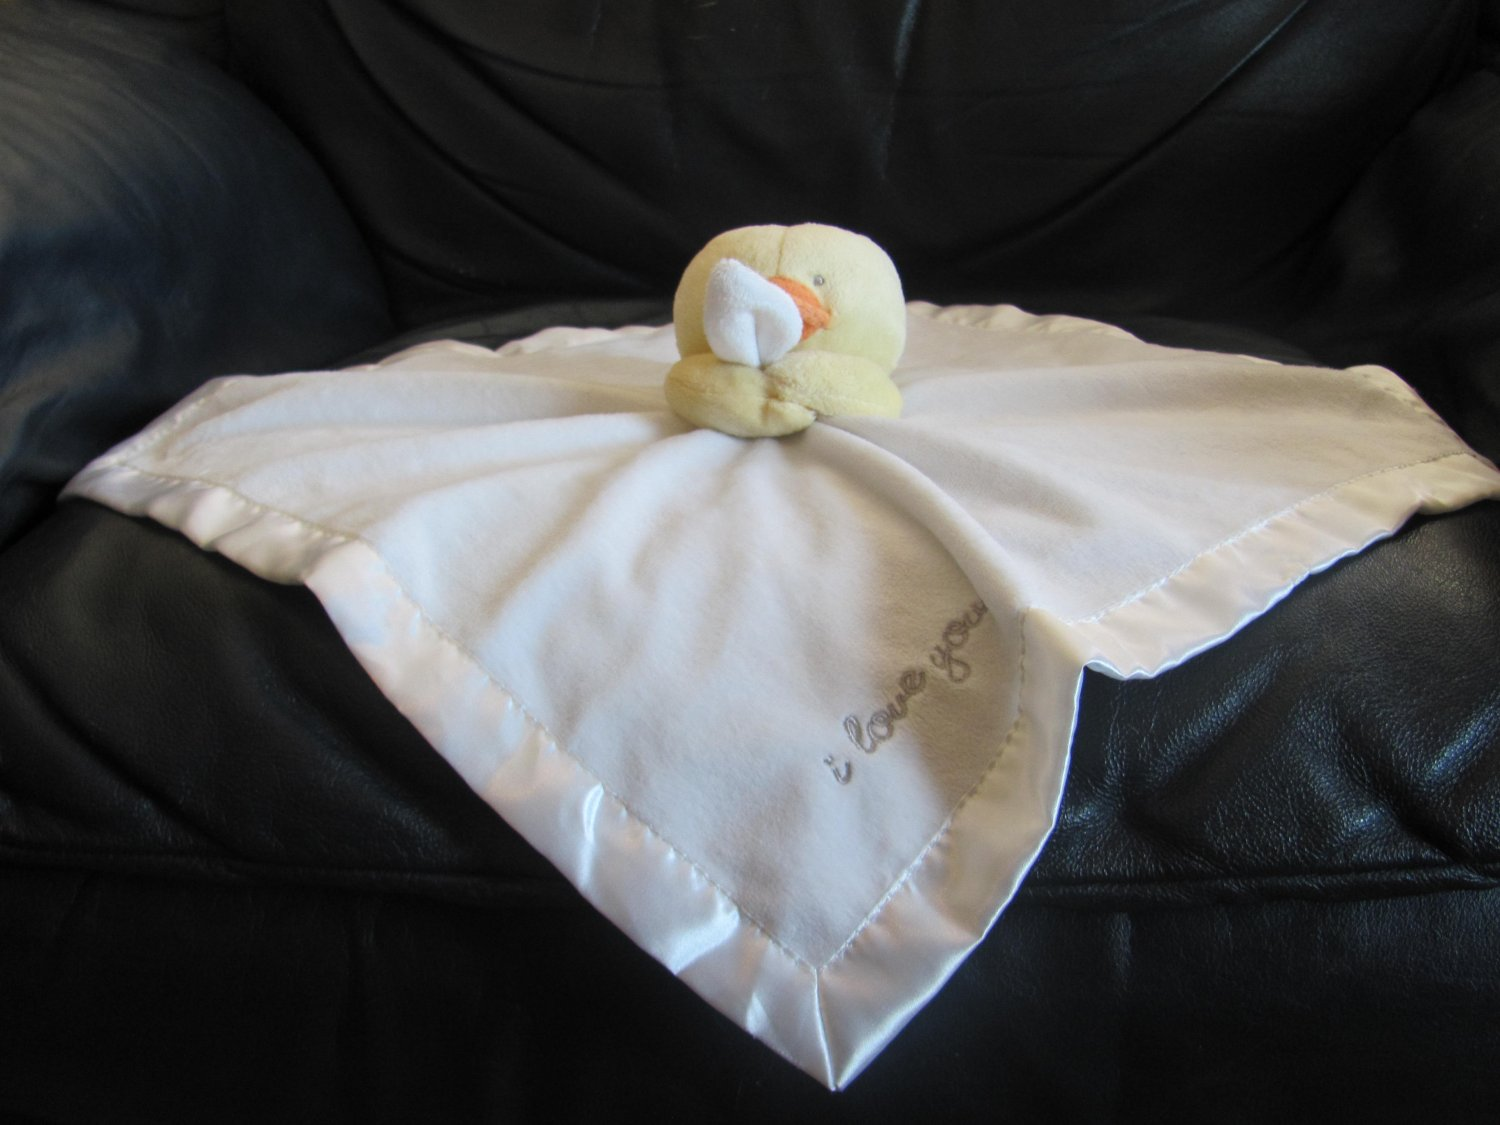 Carters One Size White I Love You Yellow Duck Duckling Rattles Lovey Security Blanket 15x16""